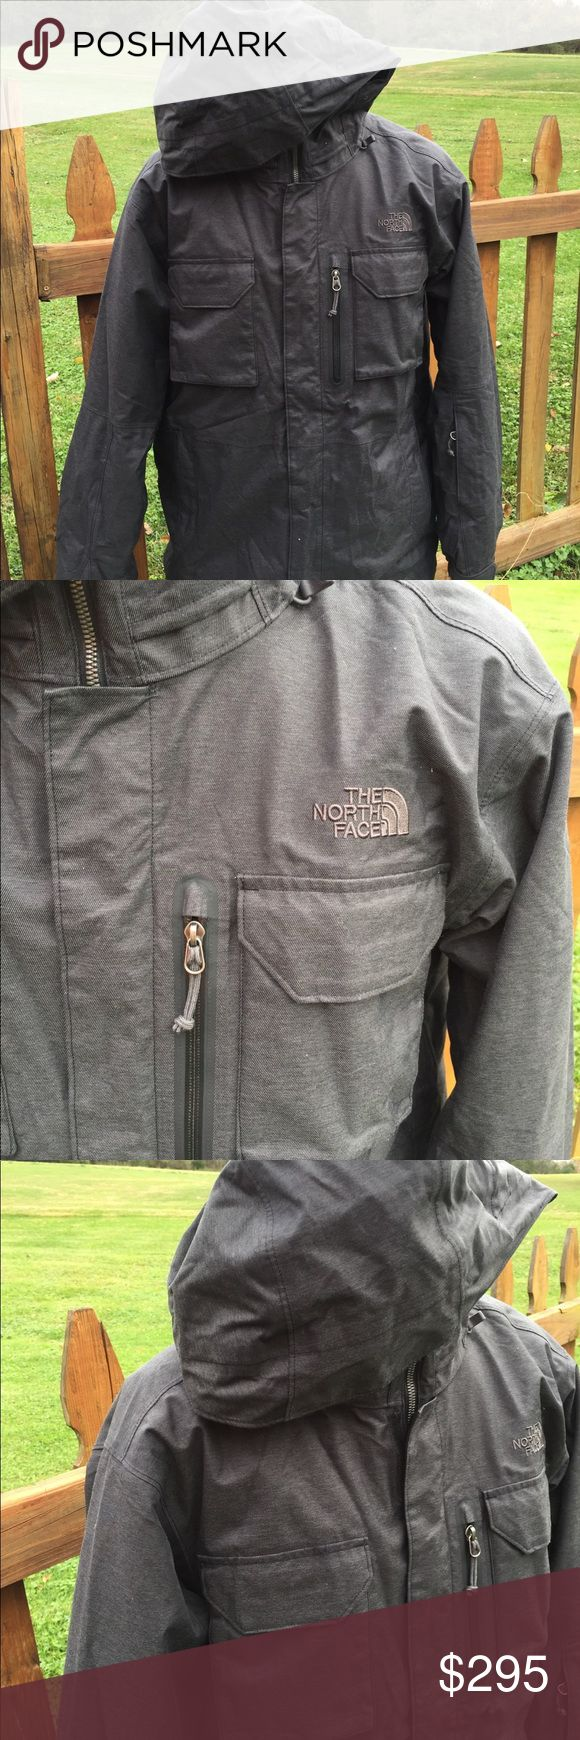 """The North Face Triclimate Mens Hyvent Jacket Coat Never worn. Size large. Dark heather grey in color. Super nice jacket. Measures: pit to pit: 22.5"""". Shoulder to shoulder: 20.5"""". No lowball offers please. Be sure to view the other items in our closet. We offer  women's, Mens and kids items in a variety of sizes. Bundle and save!! We love reasonable offers!! Thank you for viewing our item!! The North Face Jackets & Coats"""